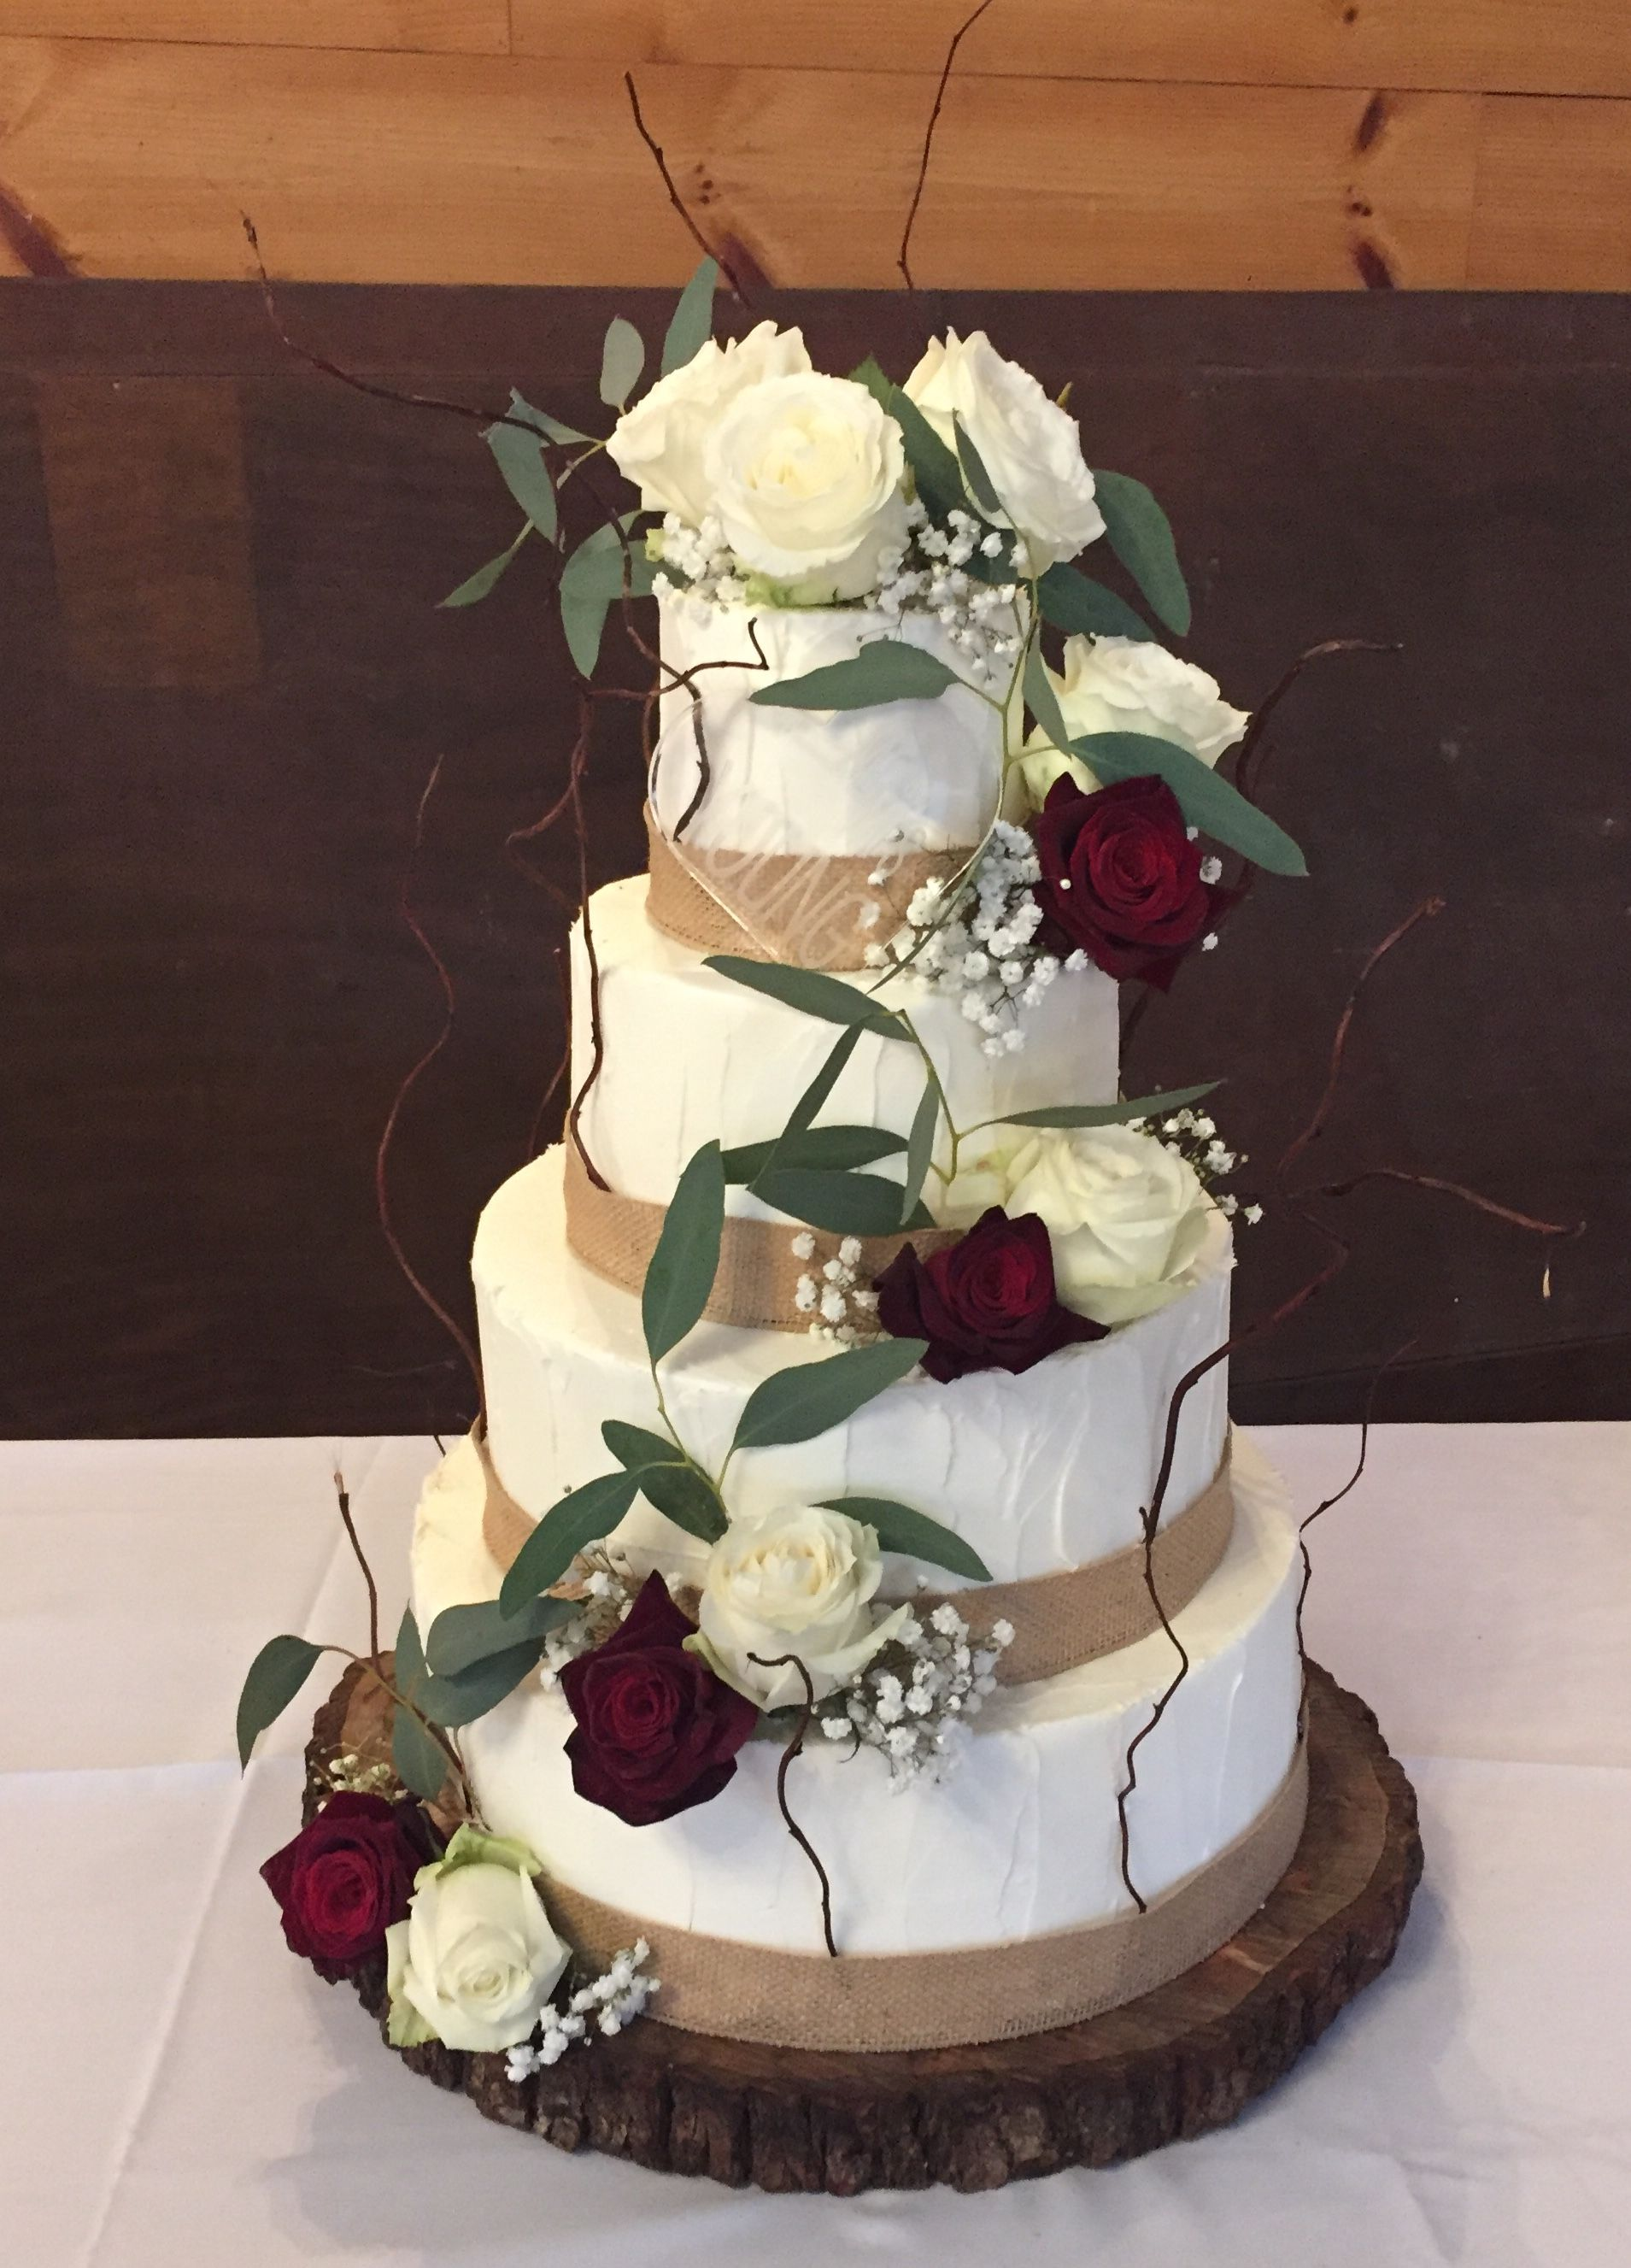 Simple Rustic Buttercream Wedding Cake With Burlap Ribbon Accented With Curly Twigs R Country Wedding Cakes White Wedding Cakes Simple Burlap Wedding Cake